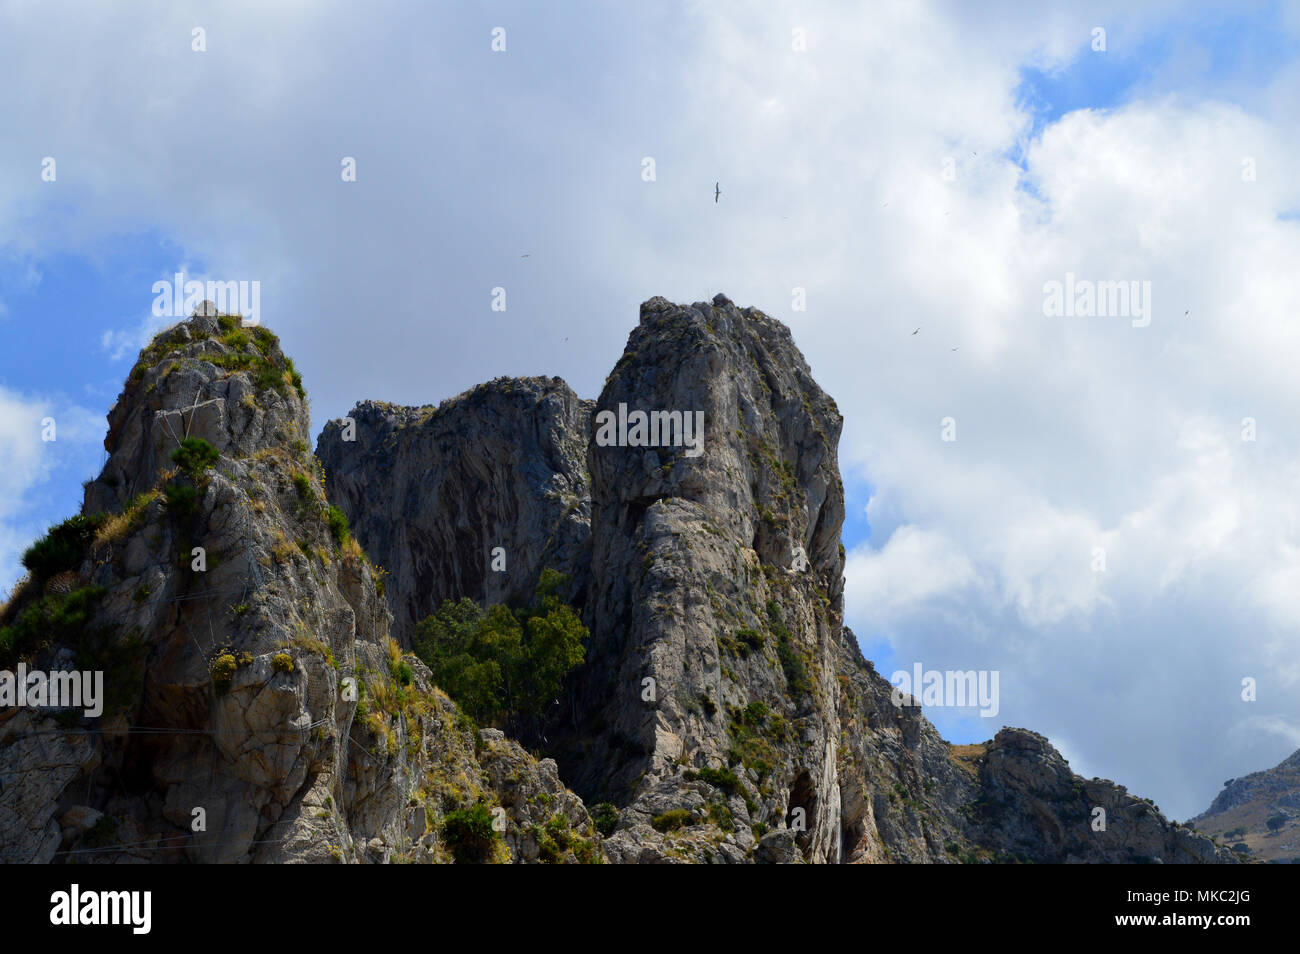 Typical Rocky Wall of the Palermo Mountains, Sicily, Italy, Europe - Stock Image